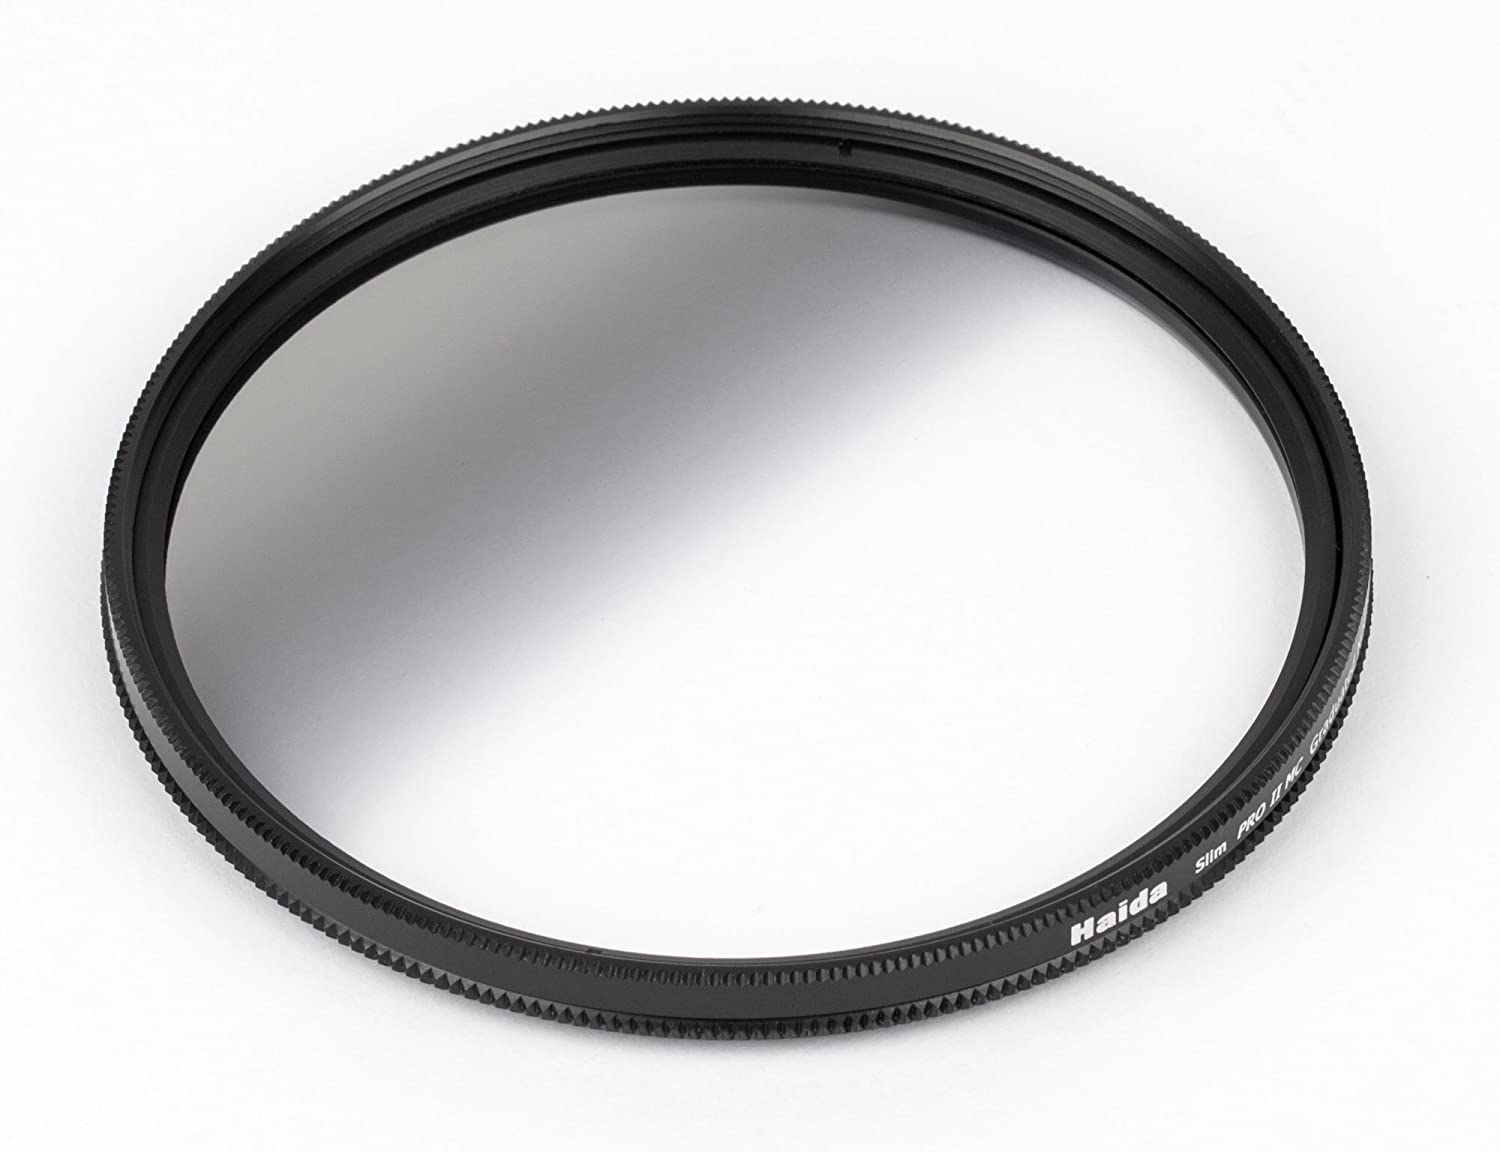 Haida Slim PROII MC 0.9 Graduated ND Filter